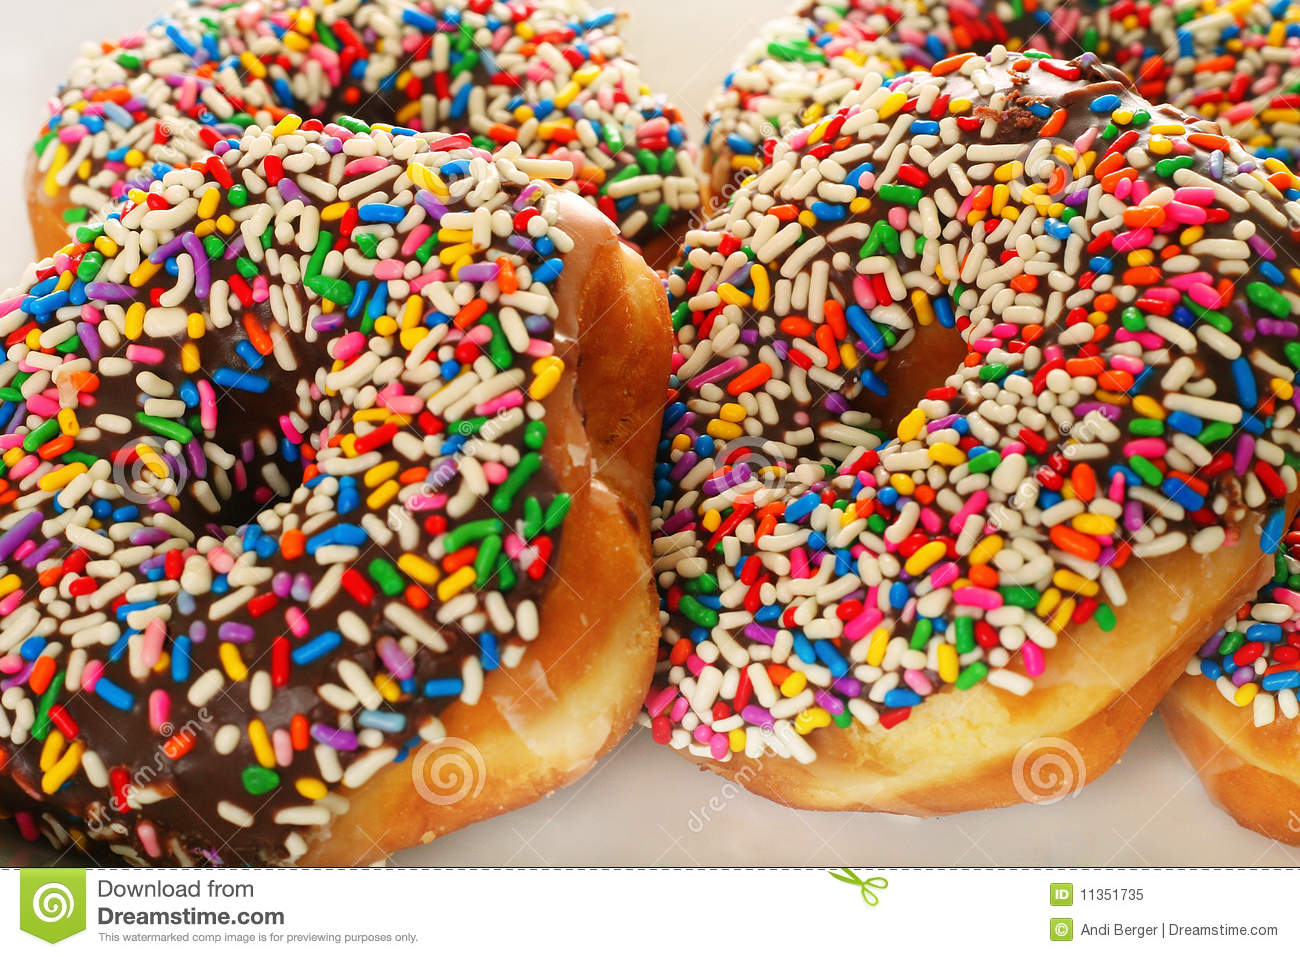 Chocolate Sprinkle Donuts Royalty Free Stock Photo - Image: 11351735